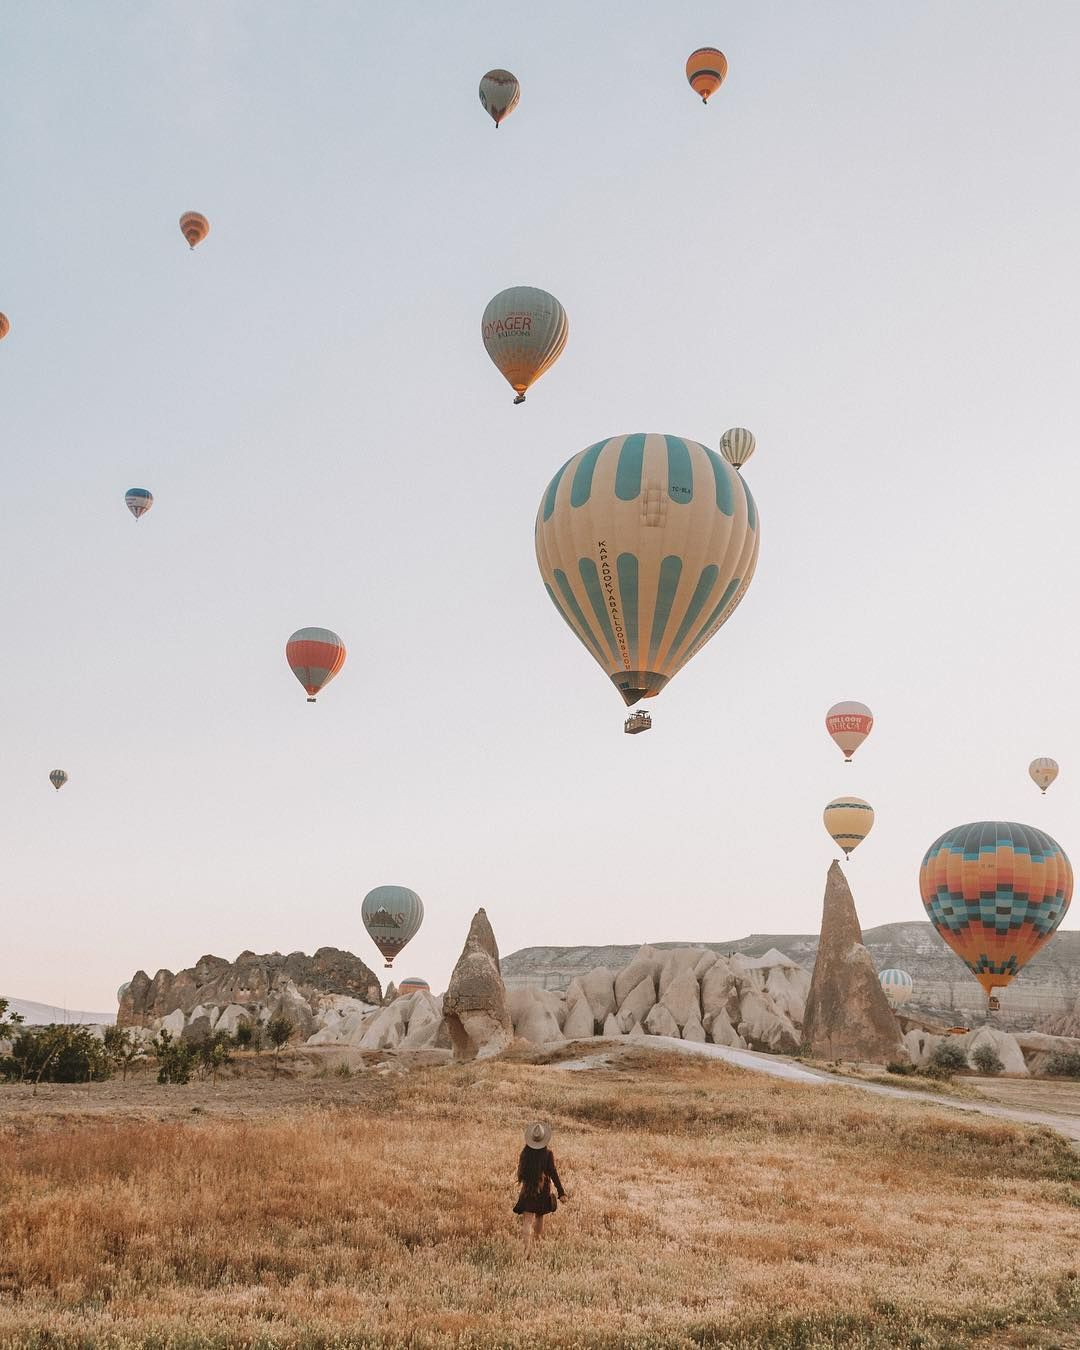 Spent the past five days in Cappadocia, waking up at 4 am